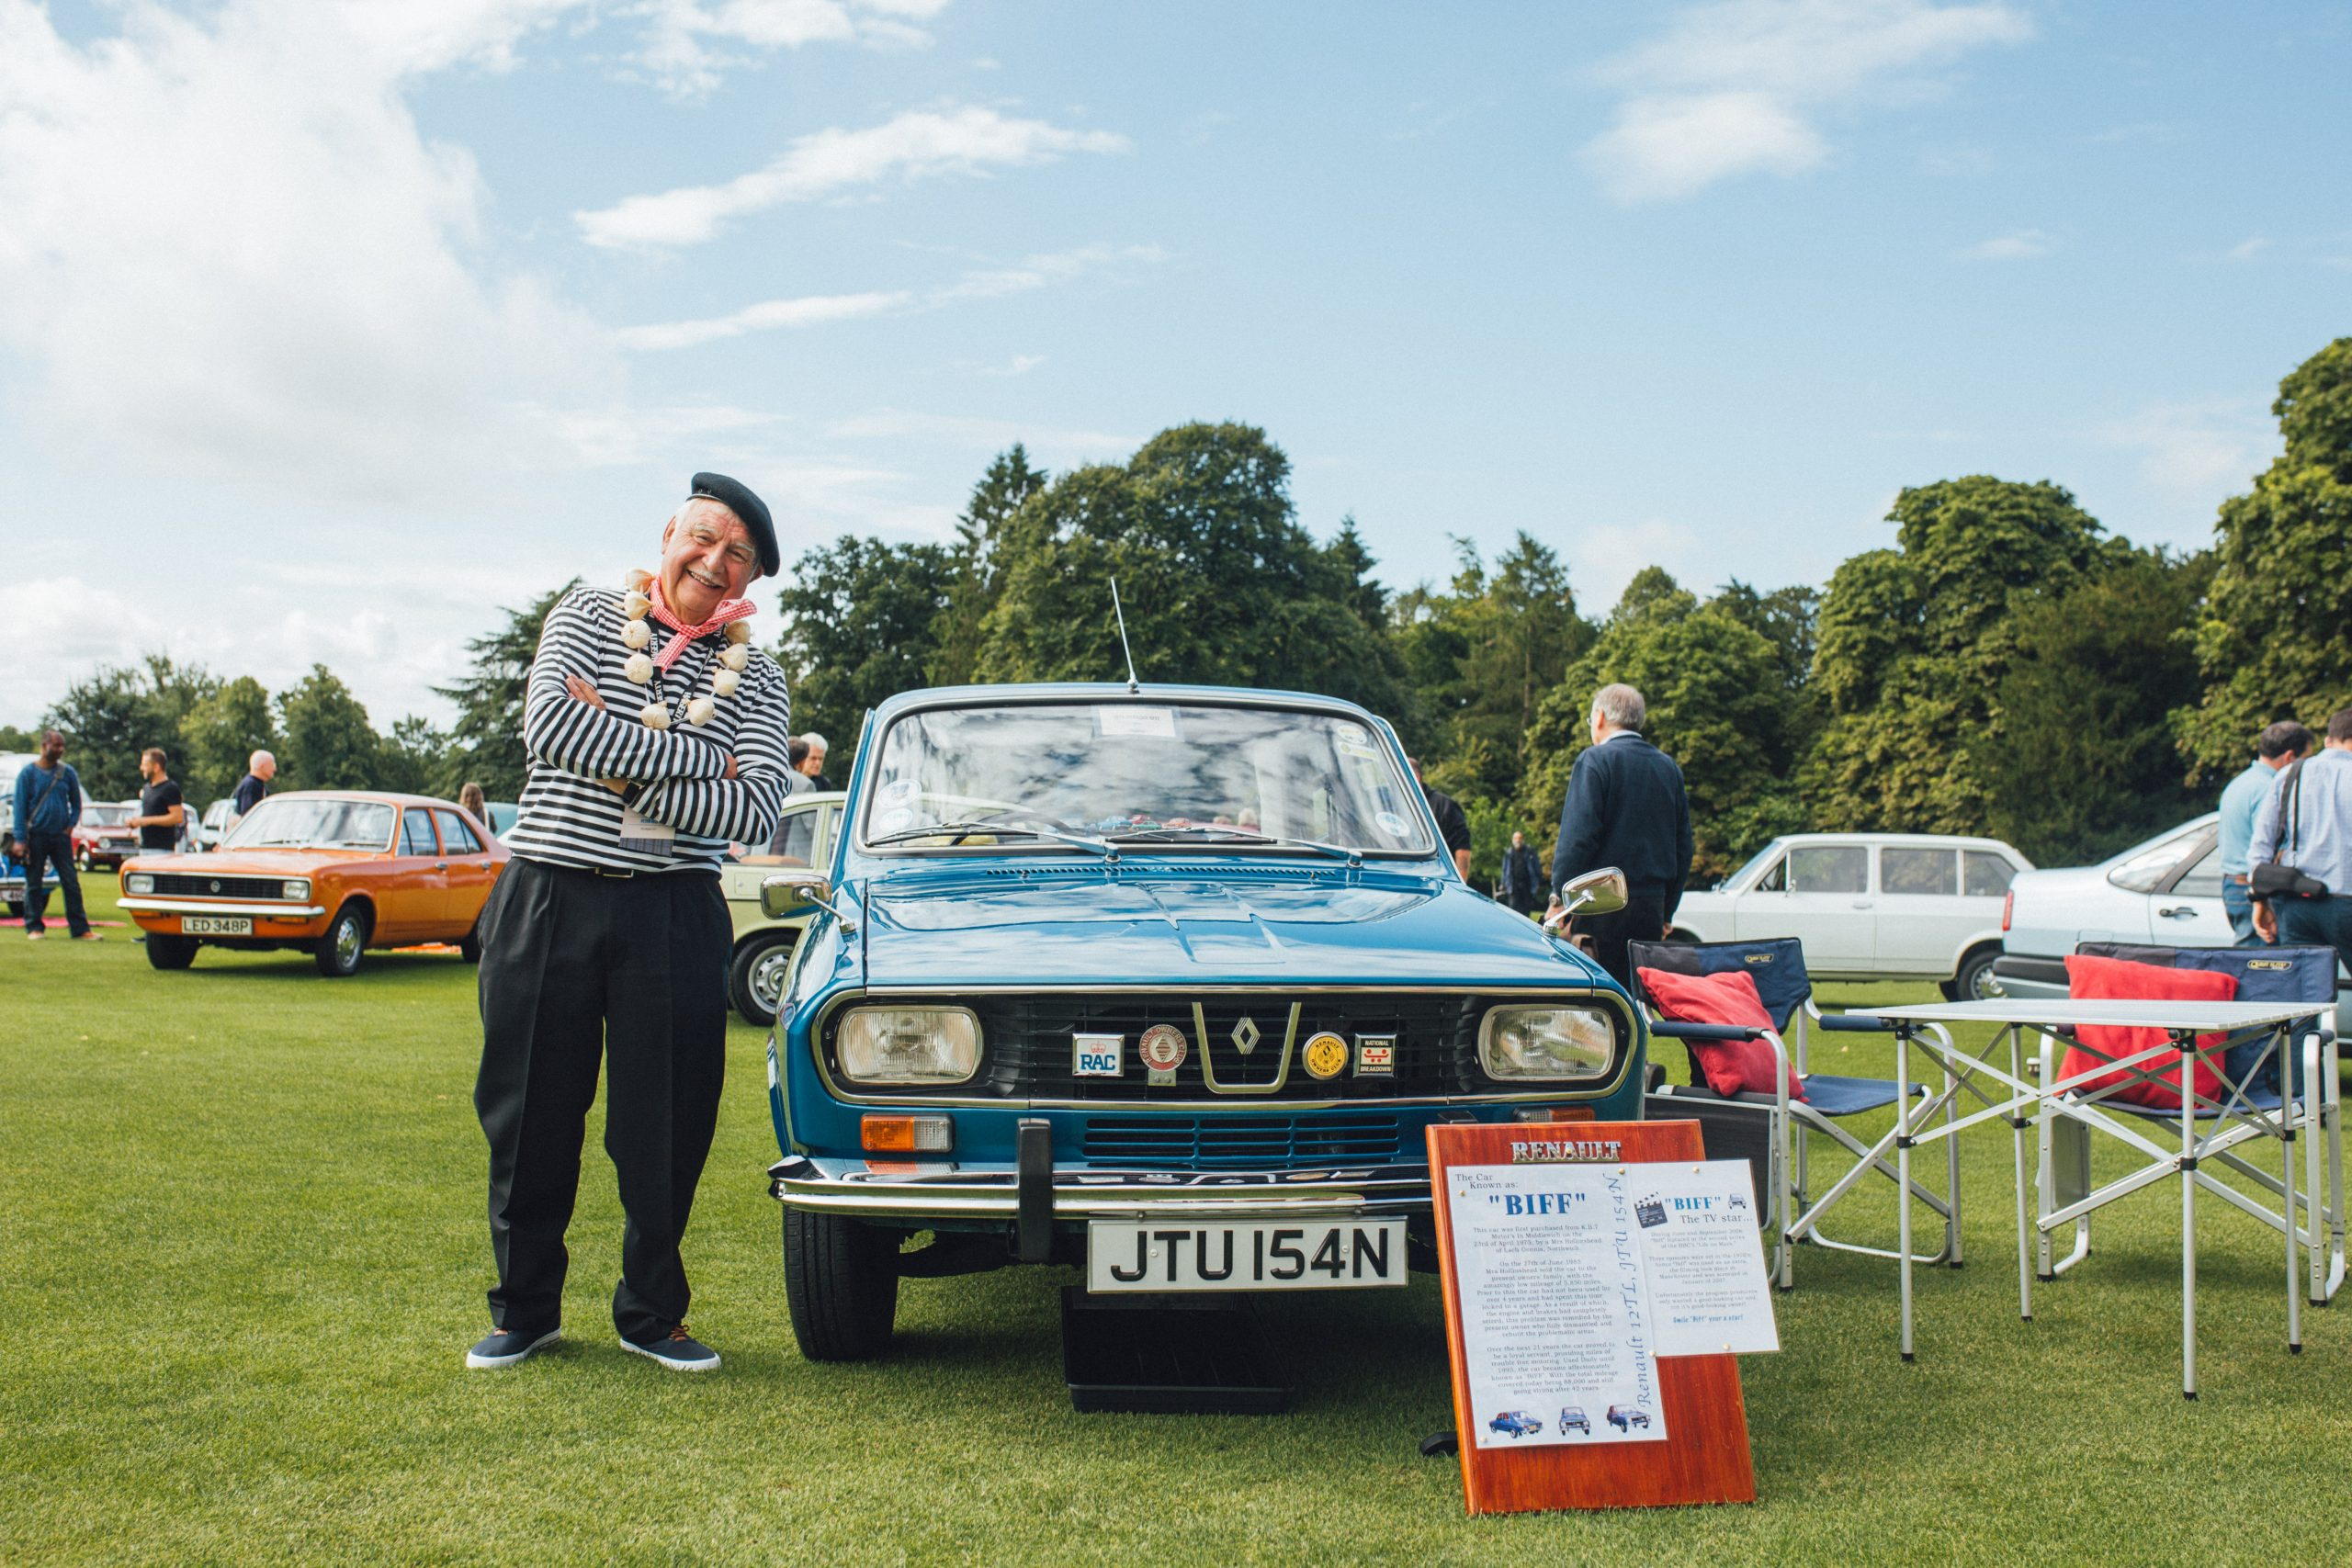 A judge's guide to preparing an entry for Hagerty's Festival of the Unexceptional